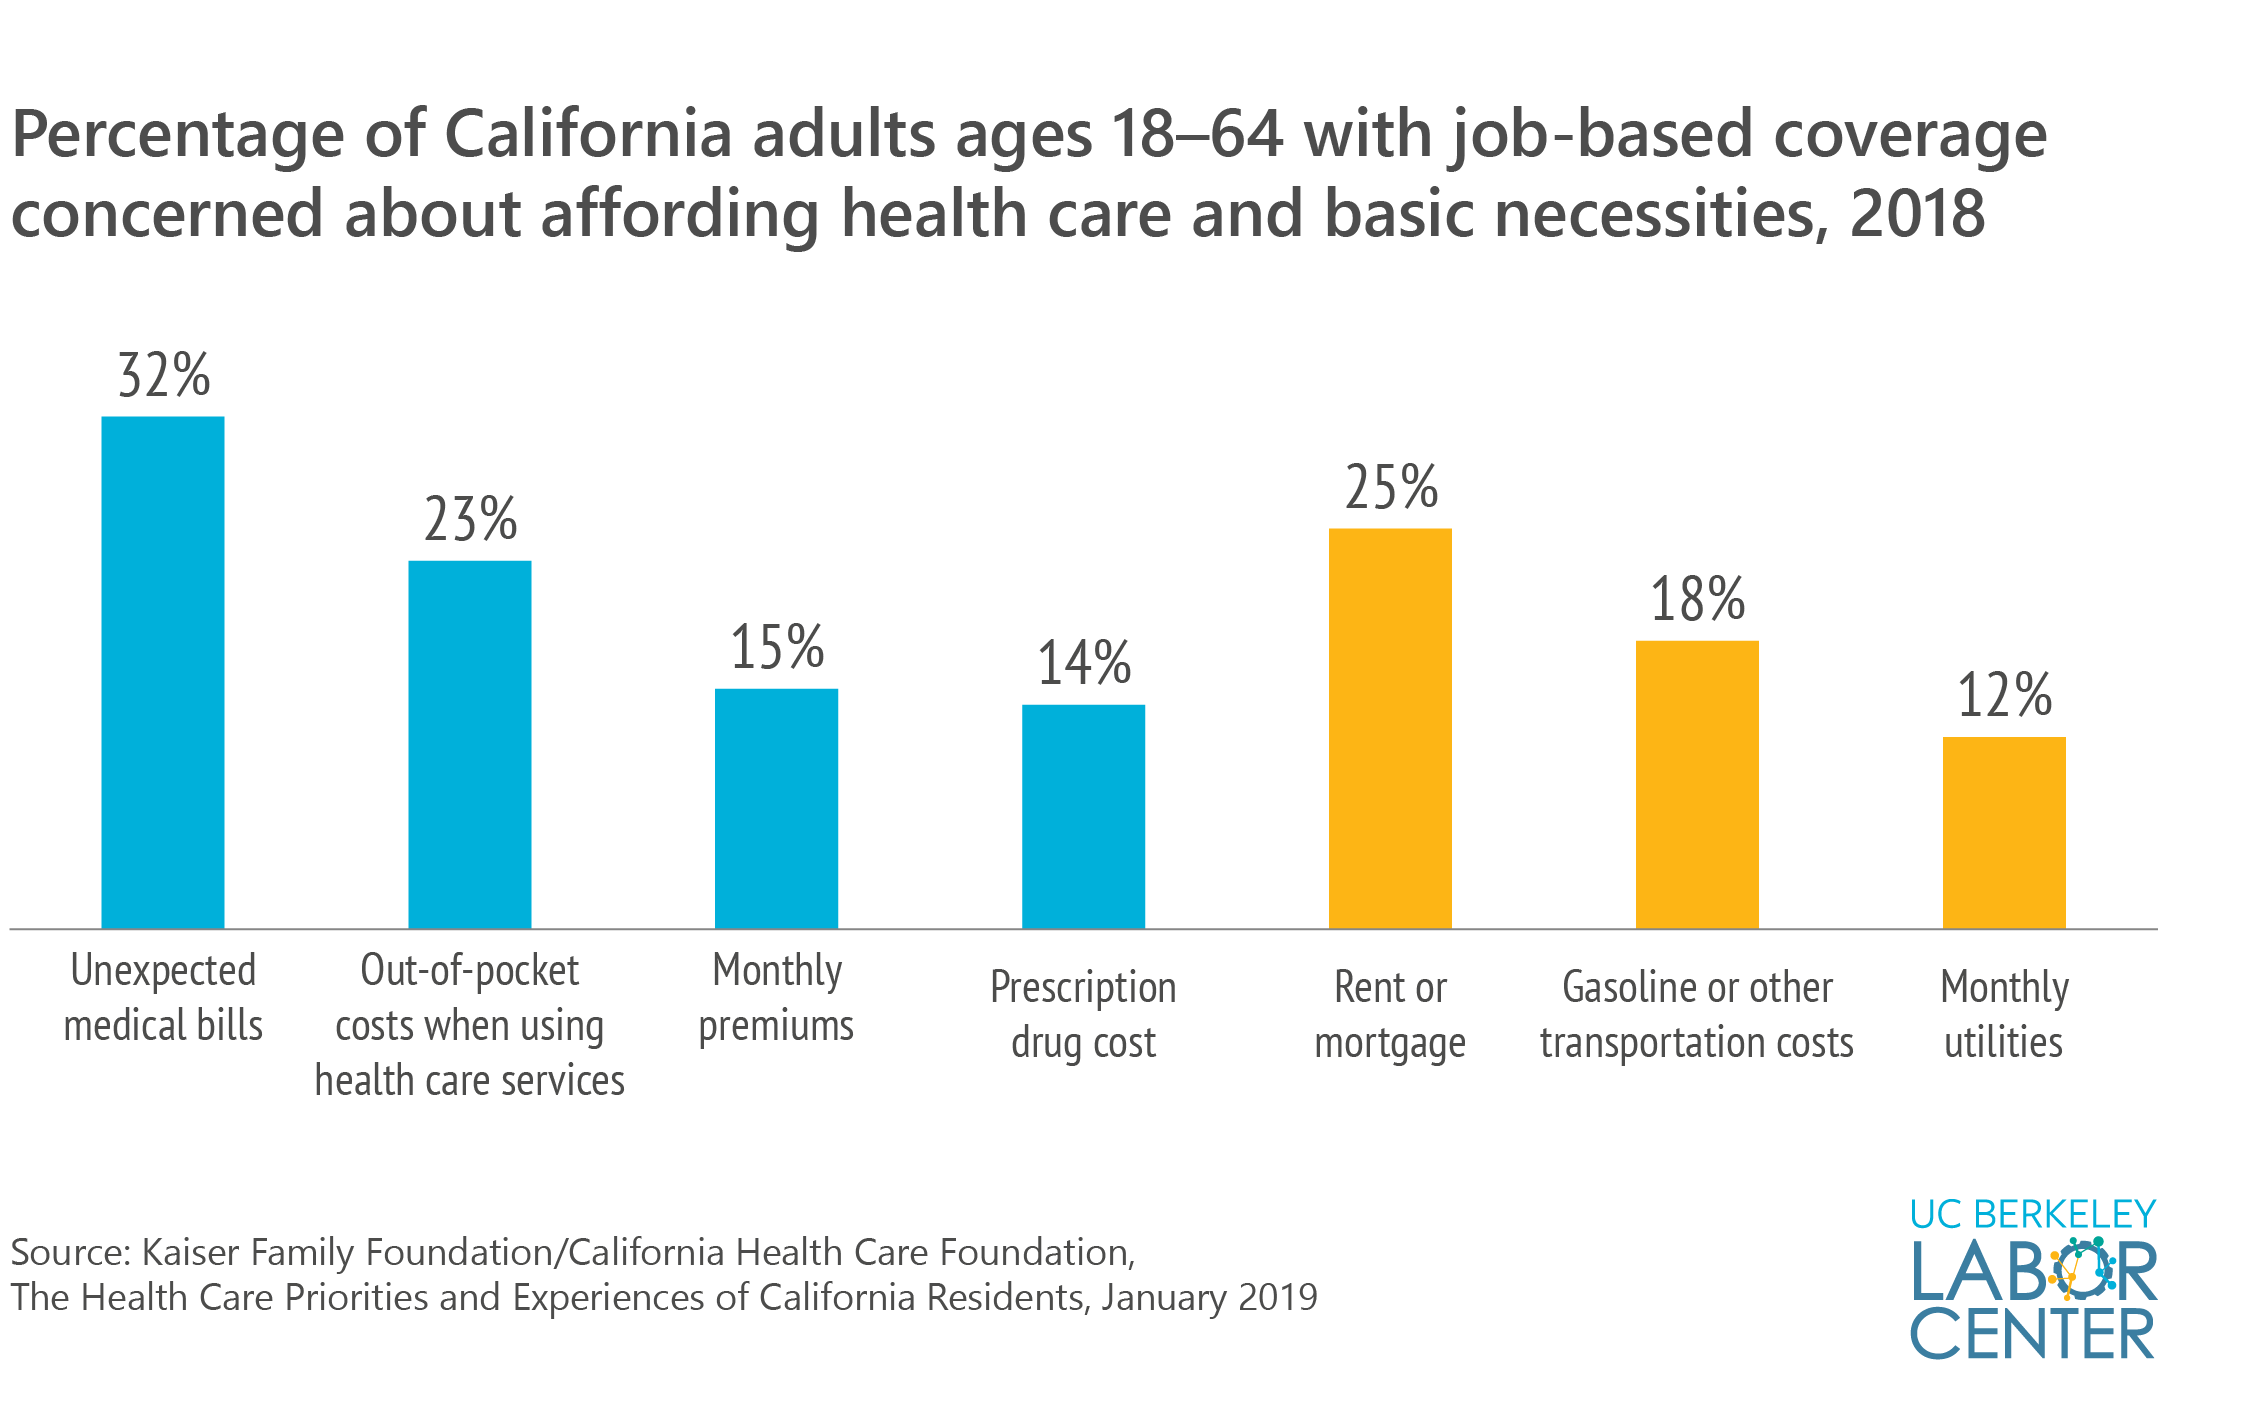 Percentage concerned about affording health care and basic necessities